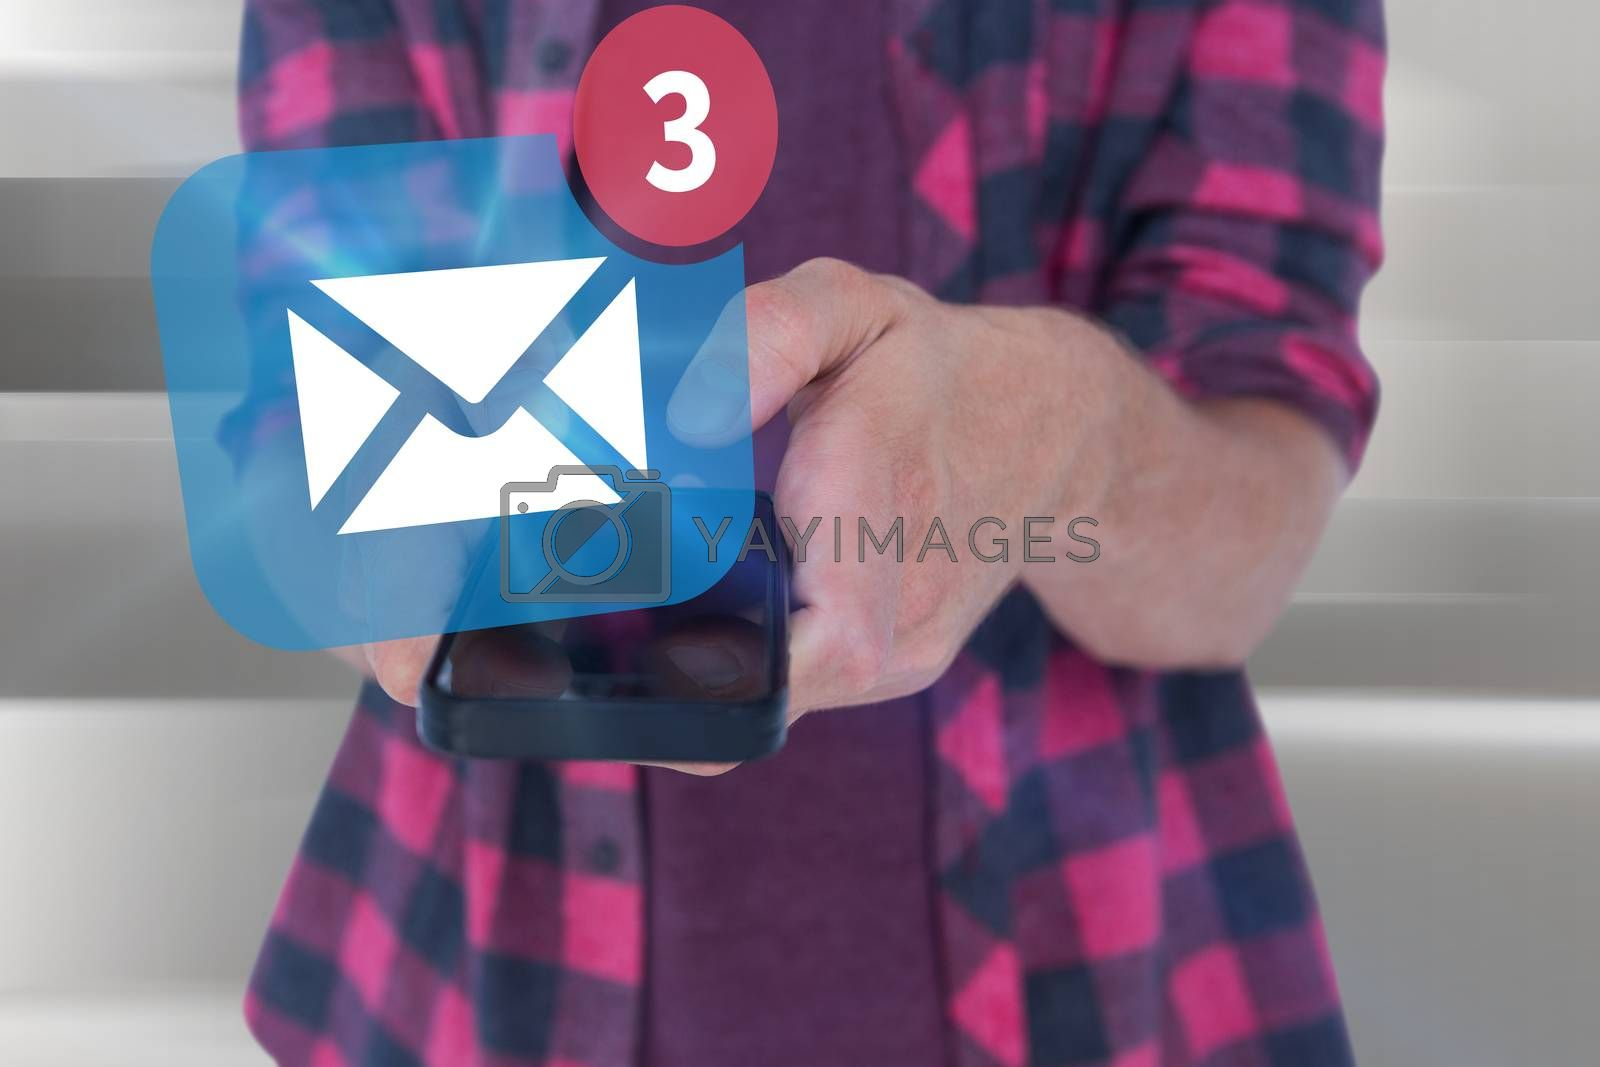 Midsection of man in casuals using smart phone against abstract white design